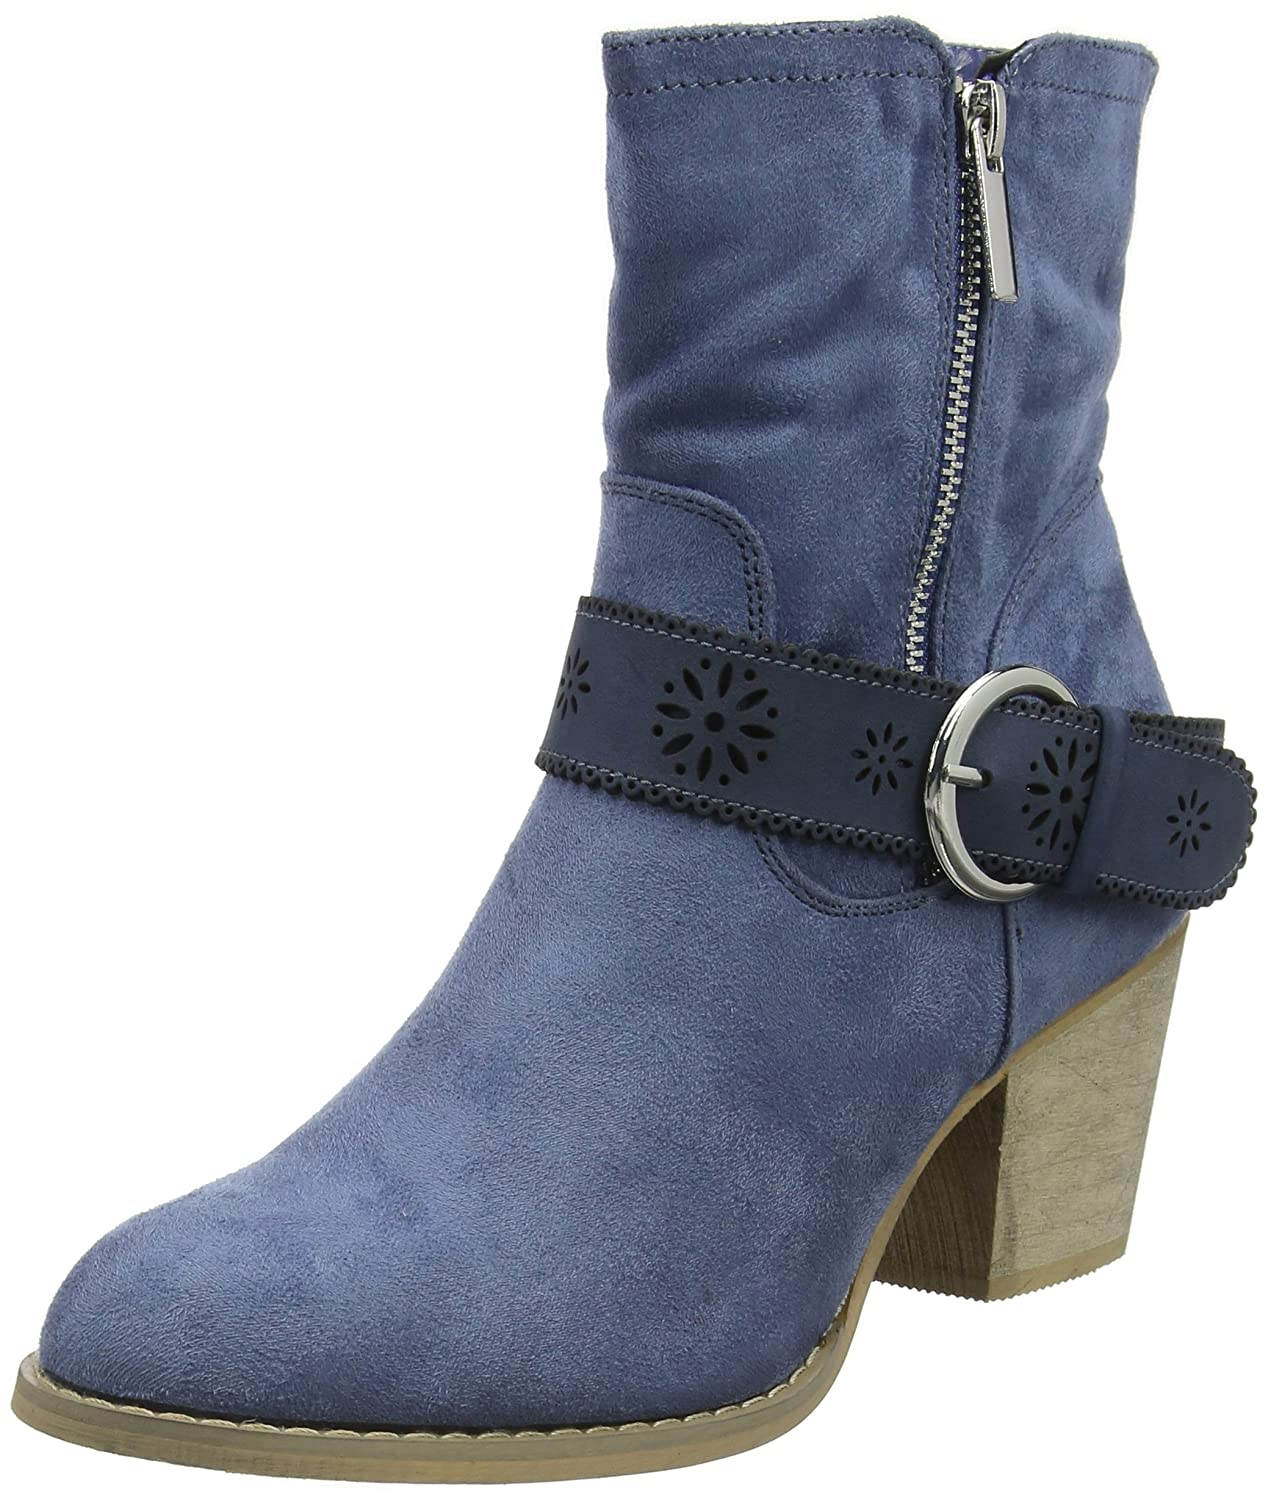 Joe Browns Brooklyn Ankle Boots, Botines para Mujer38 EU|Azul (Blue A)